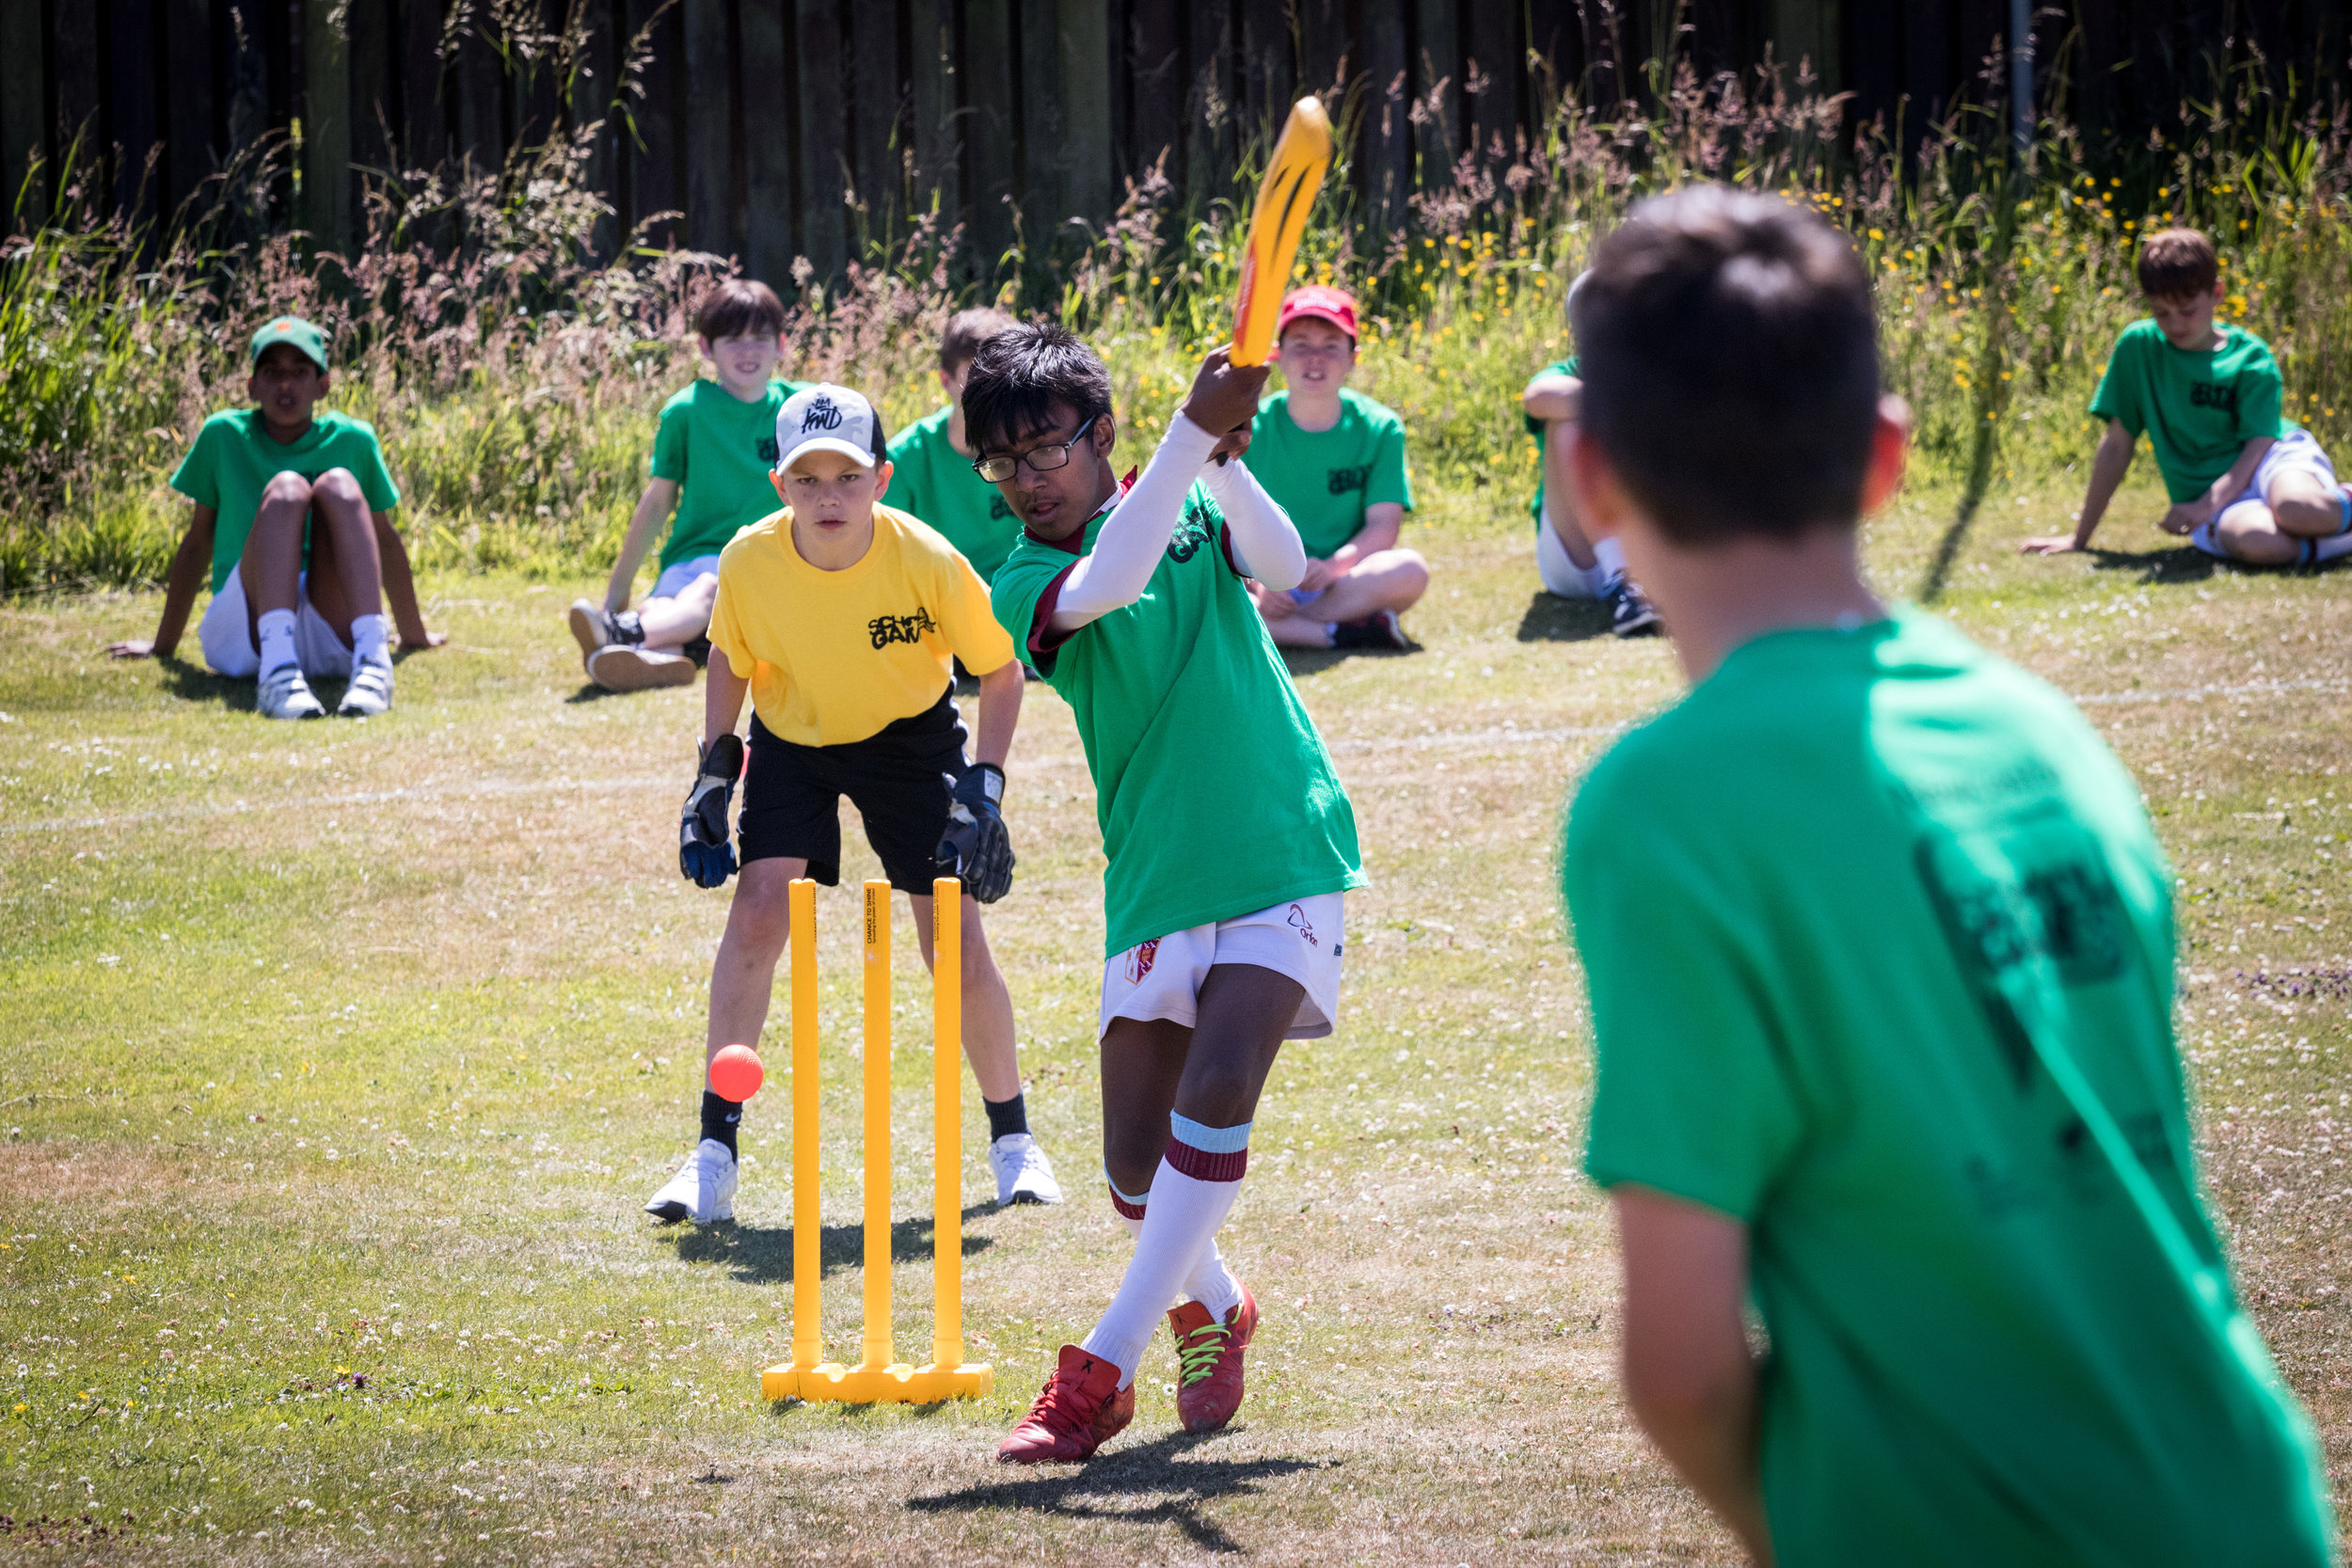 7622-190-TWS School Games June 2018.jpg